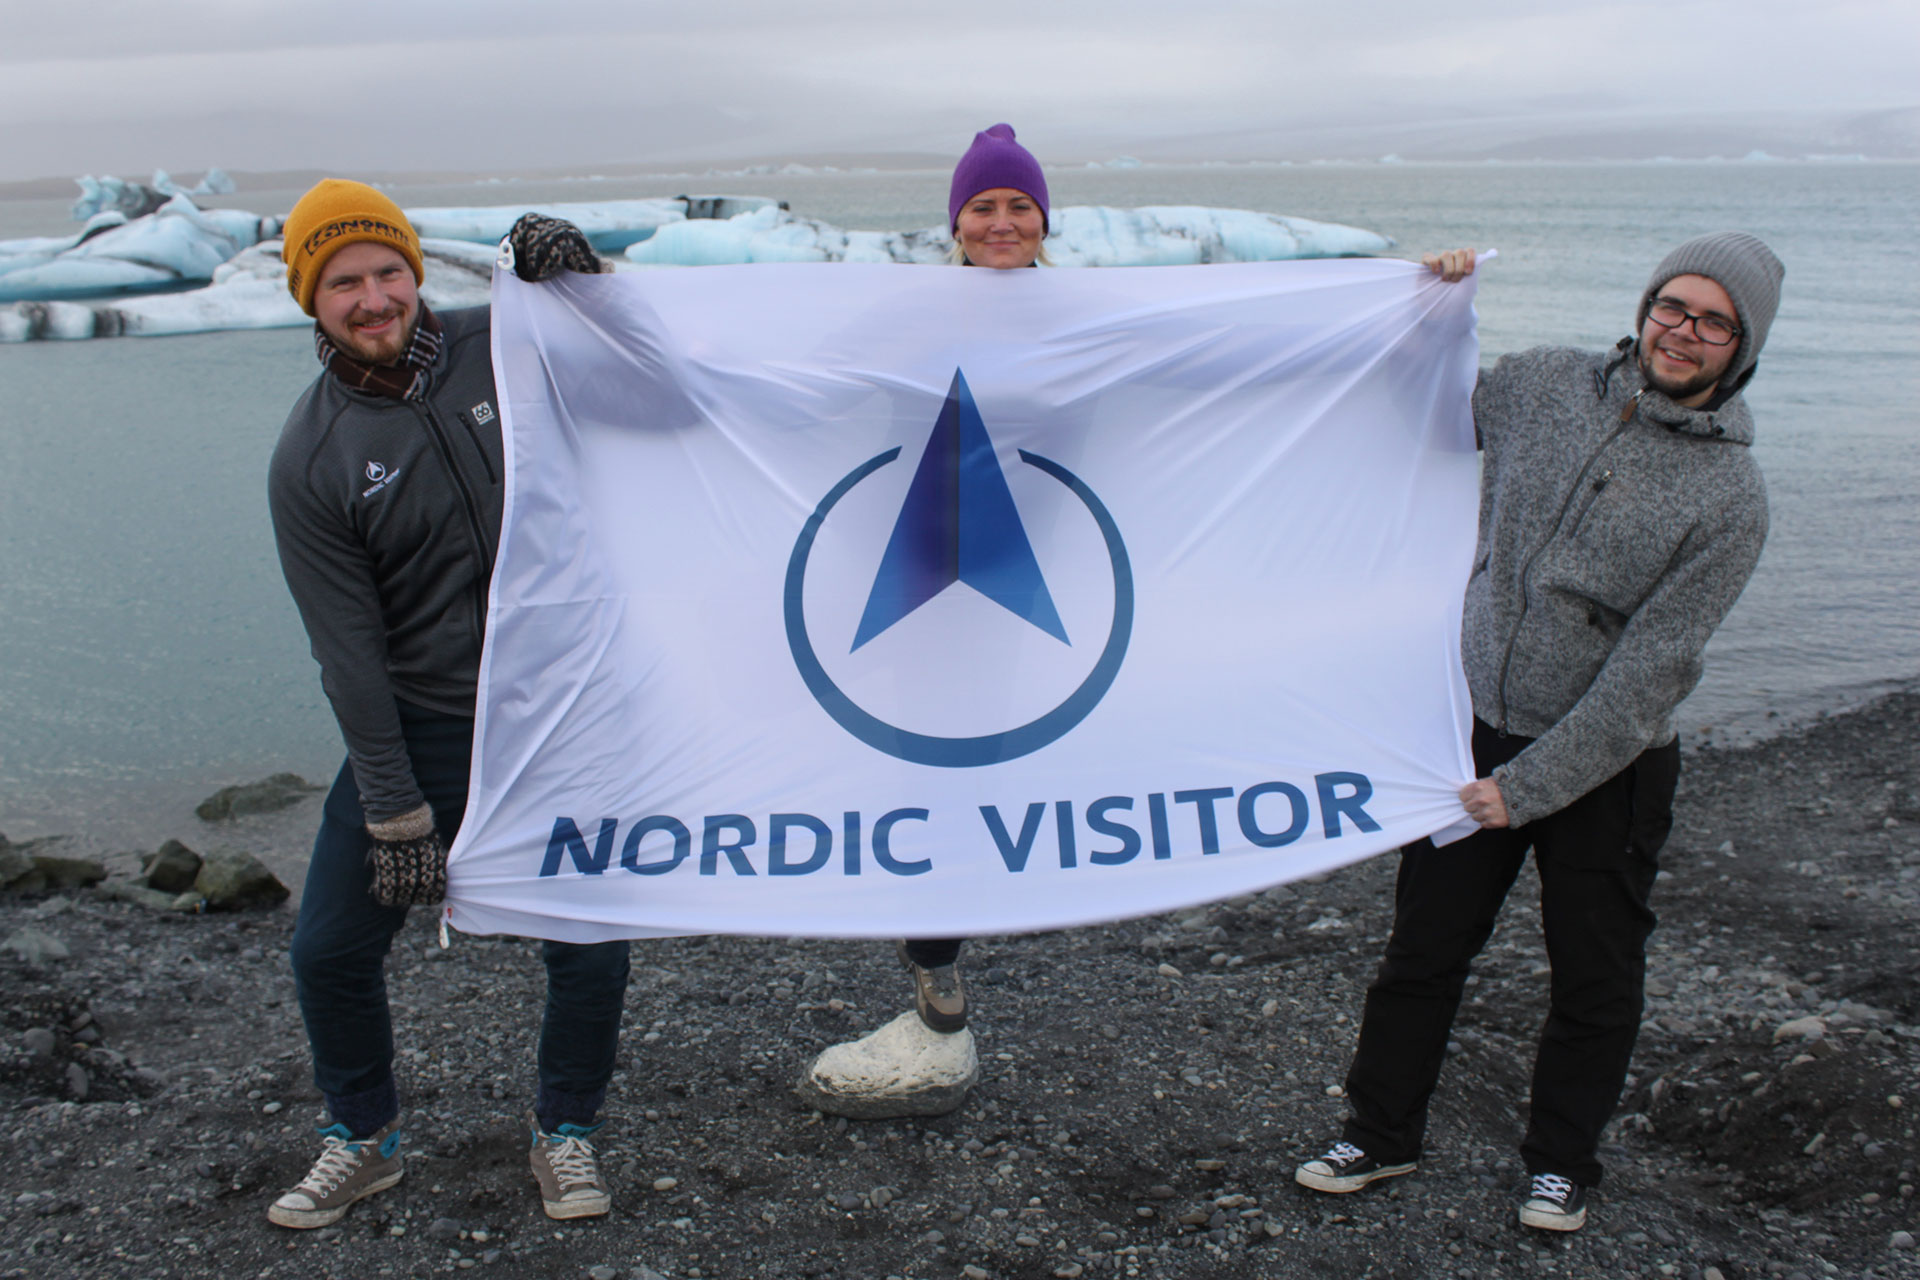 Nordic Visitor at Jökulsárlón